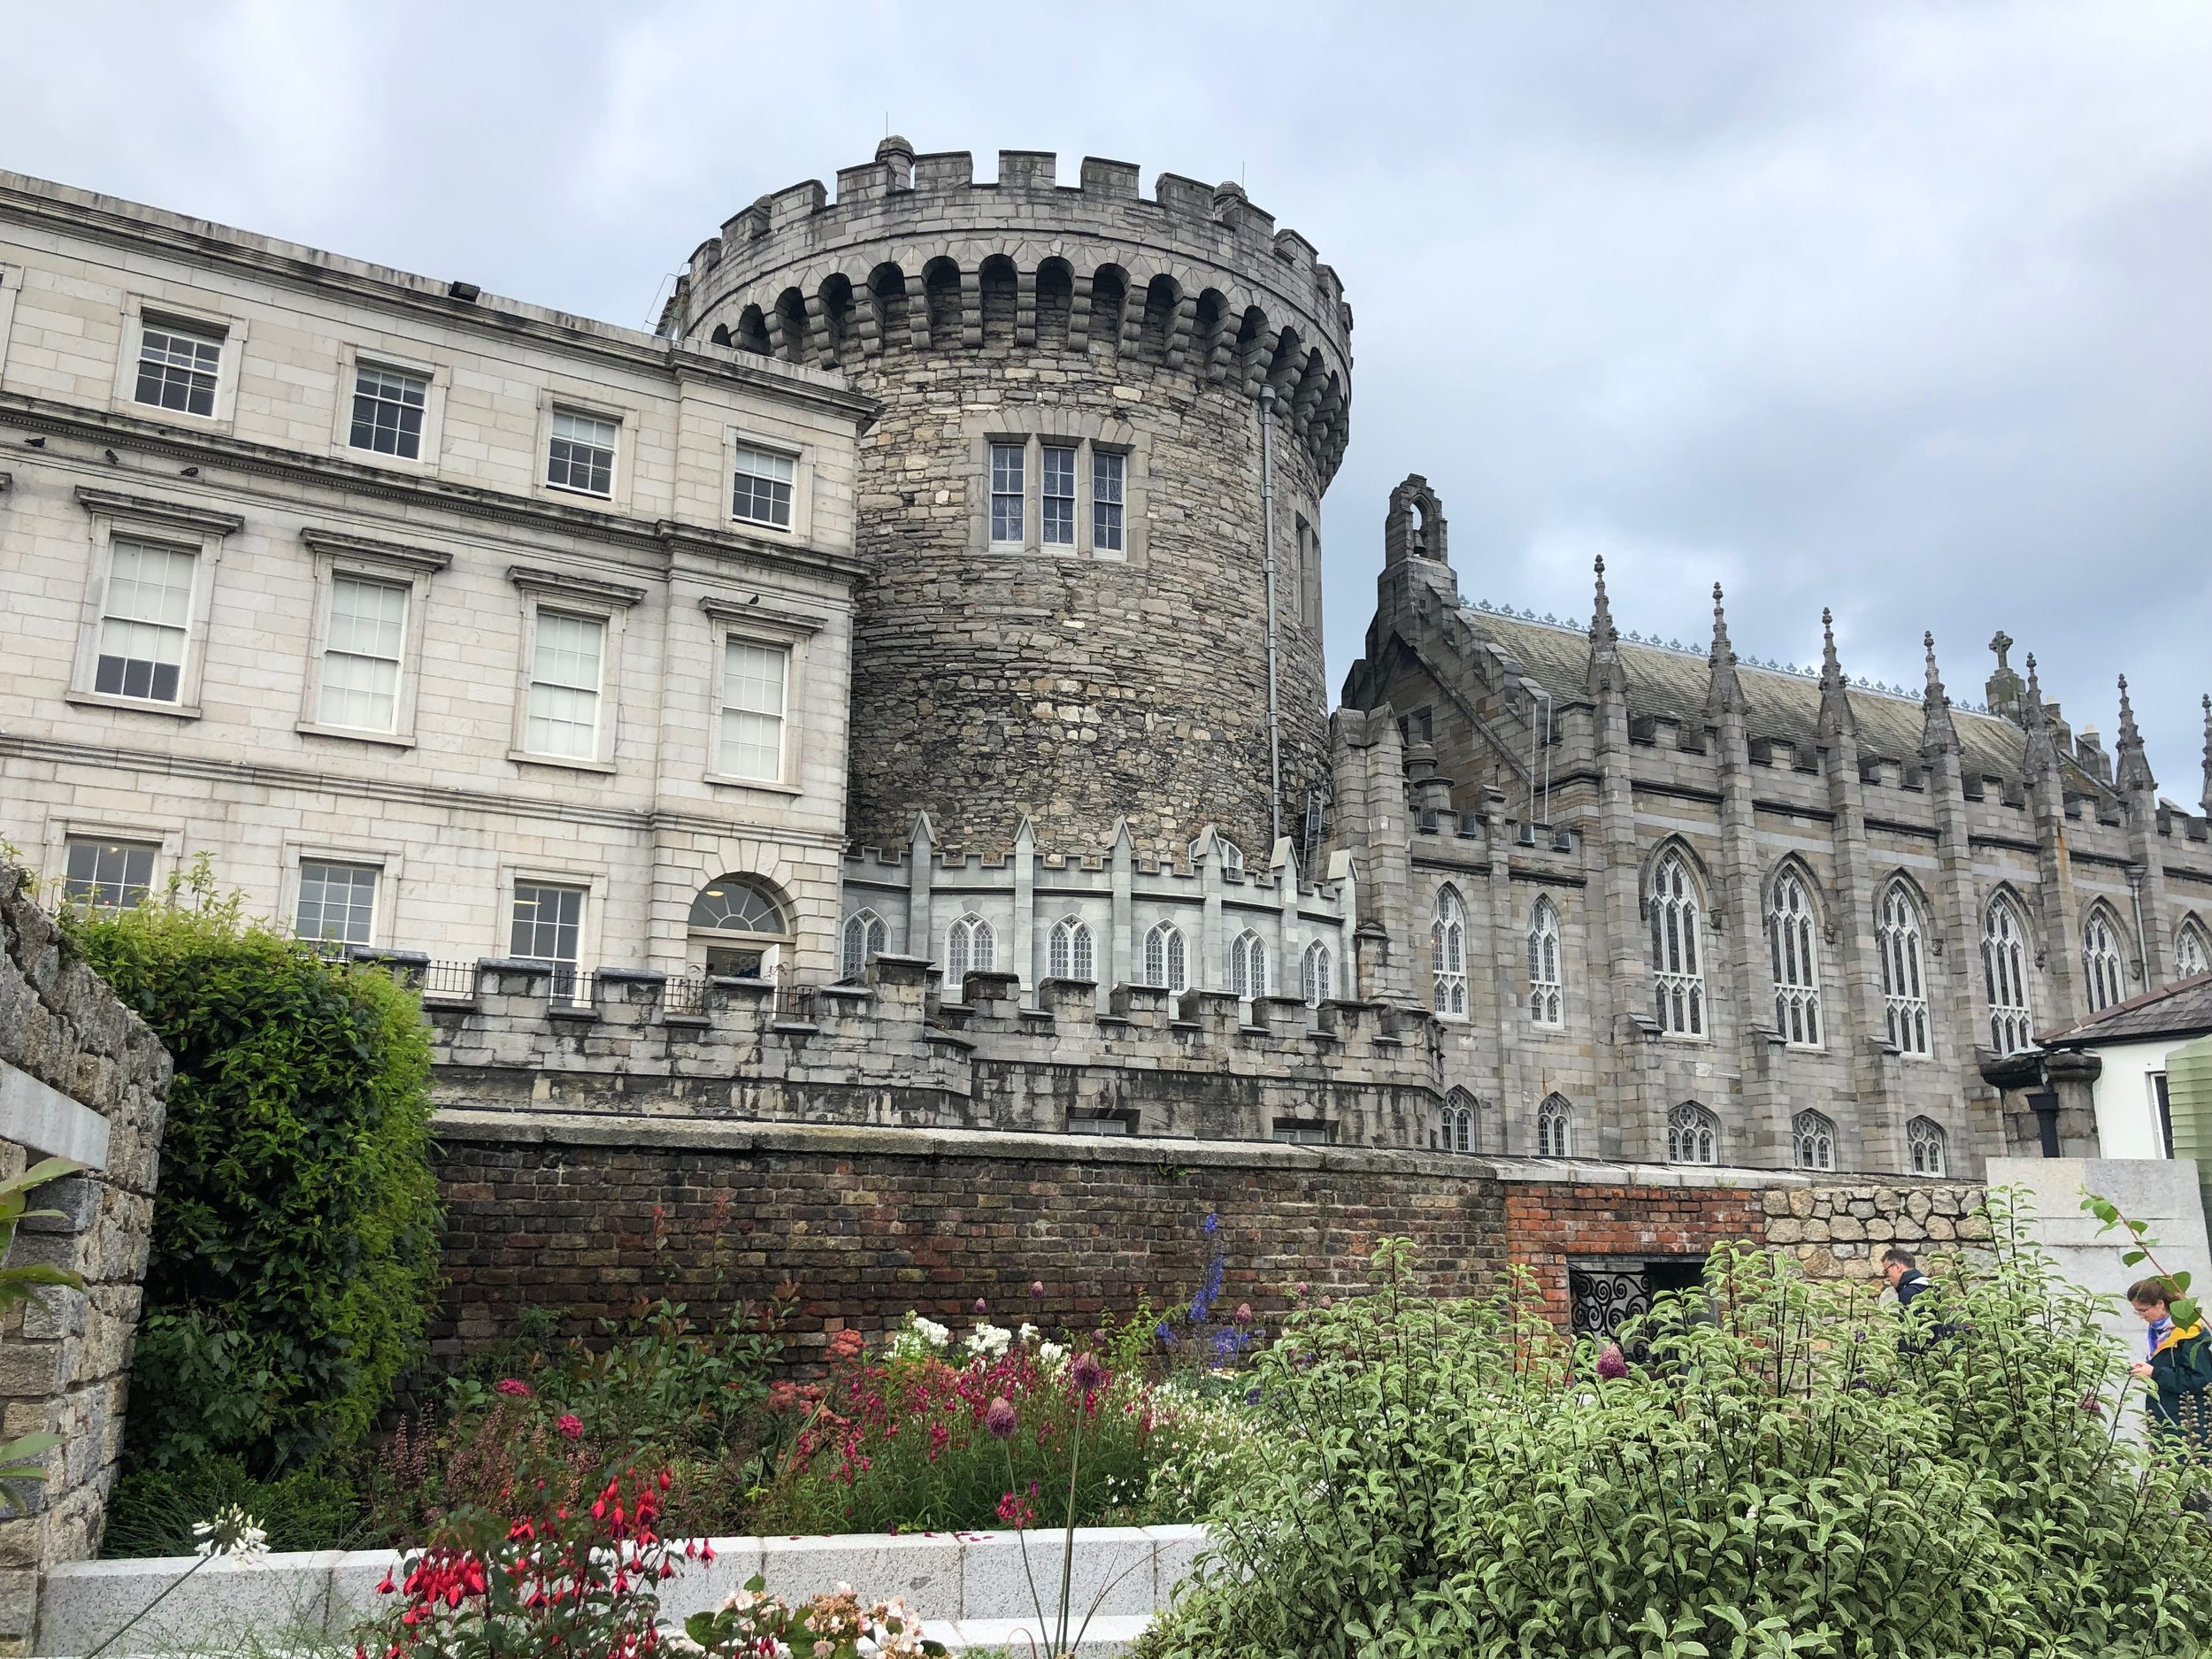 Our first stop in Ireland was Dublin, which is has many old buildings like the one above that have been re-purposed to serve the changing needs of the city. As I recall this castle/cathedral is currently being used for some sort governmental function.